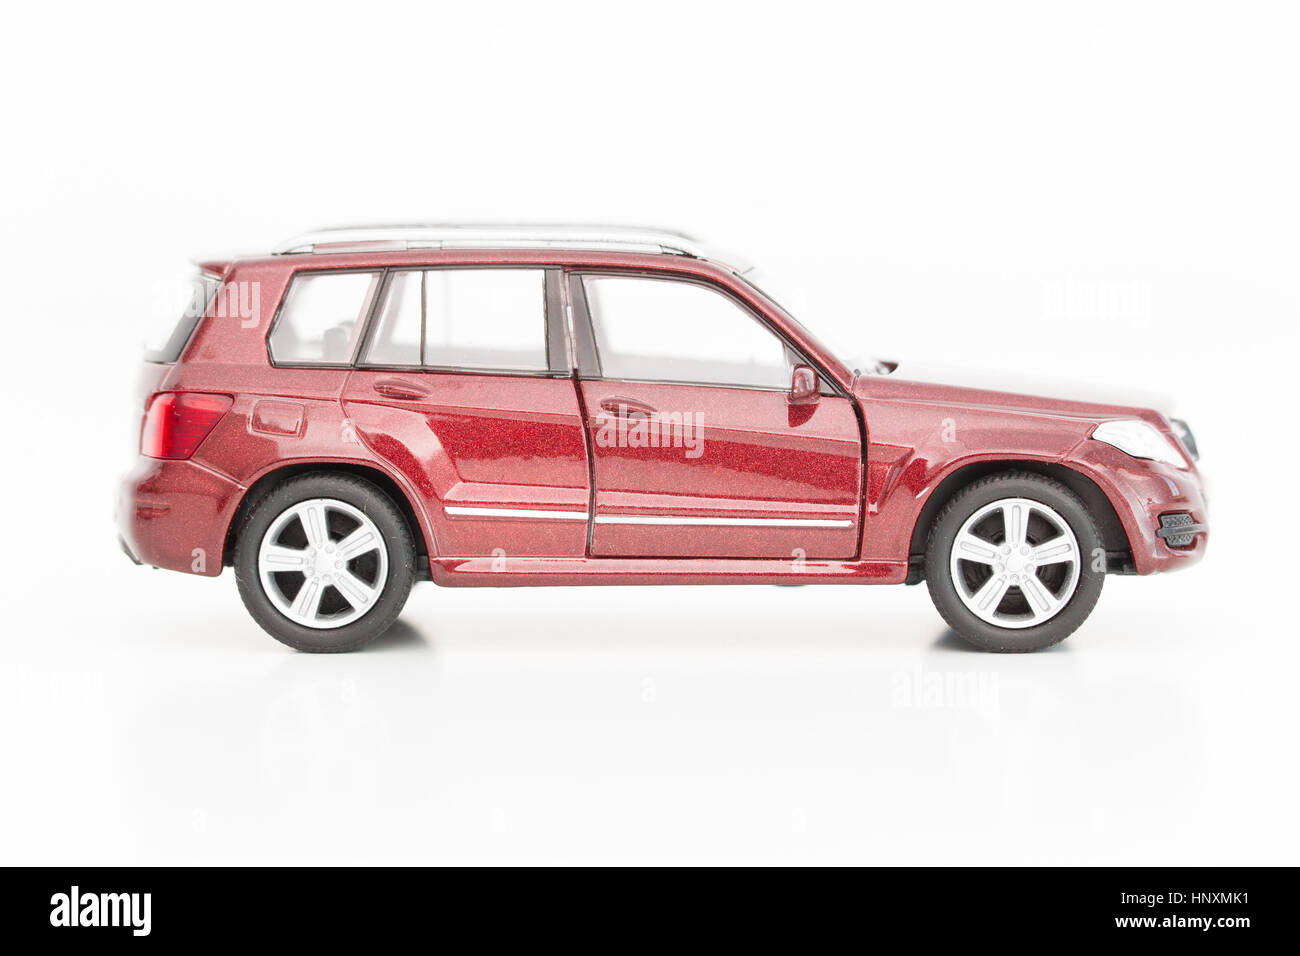 A model car is seen with Euro currency units. - Stock Image